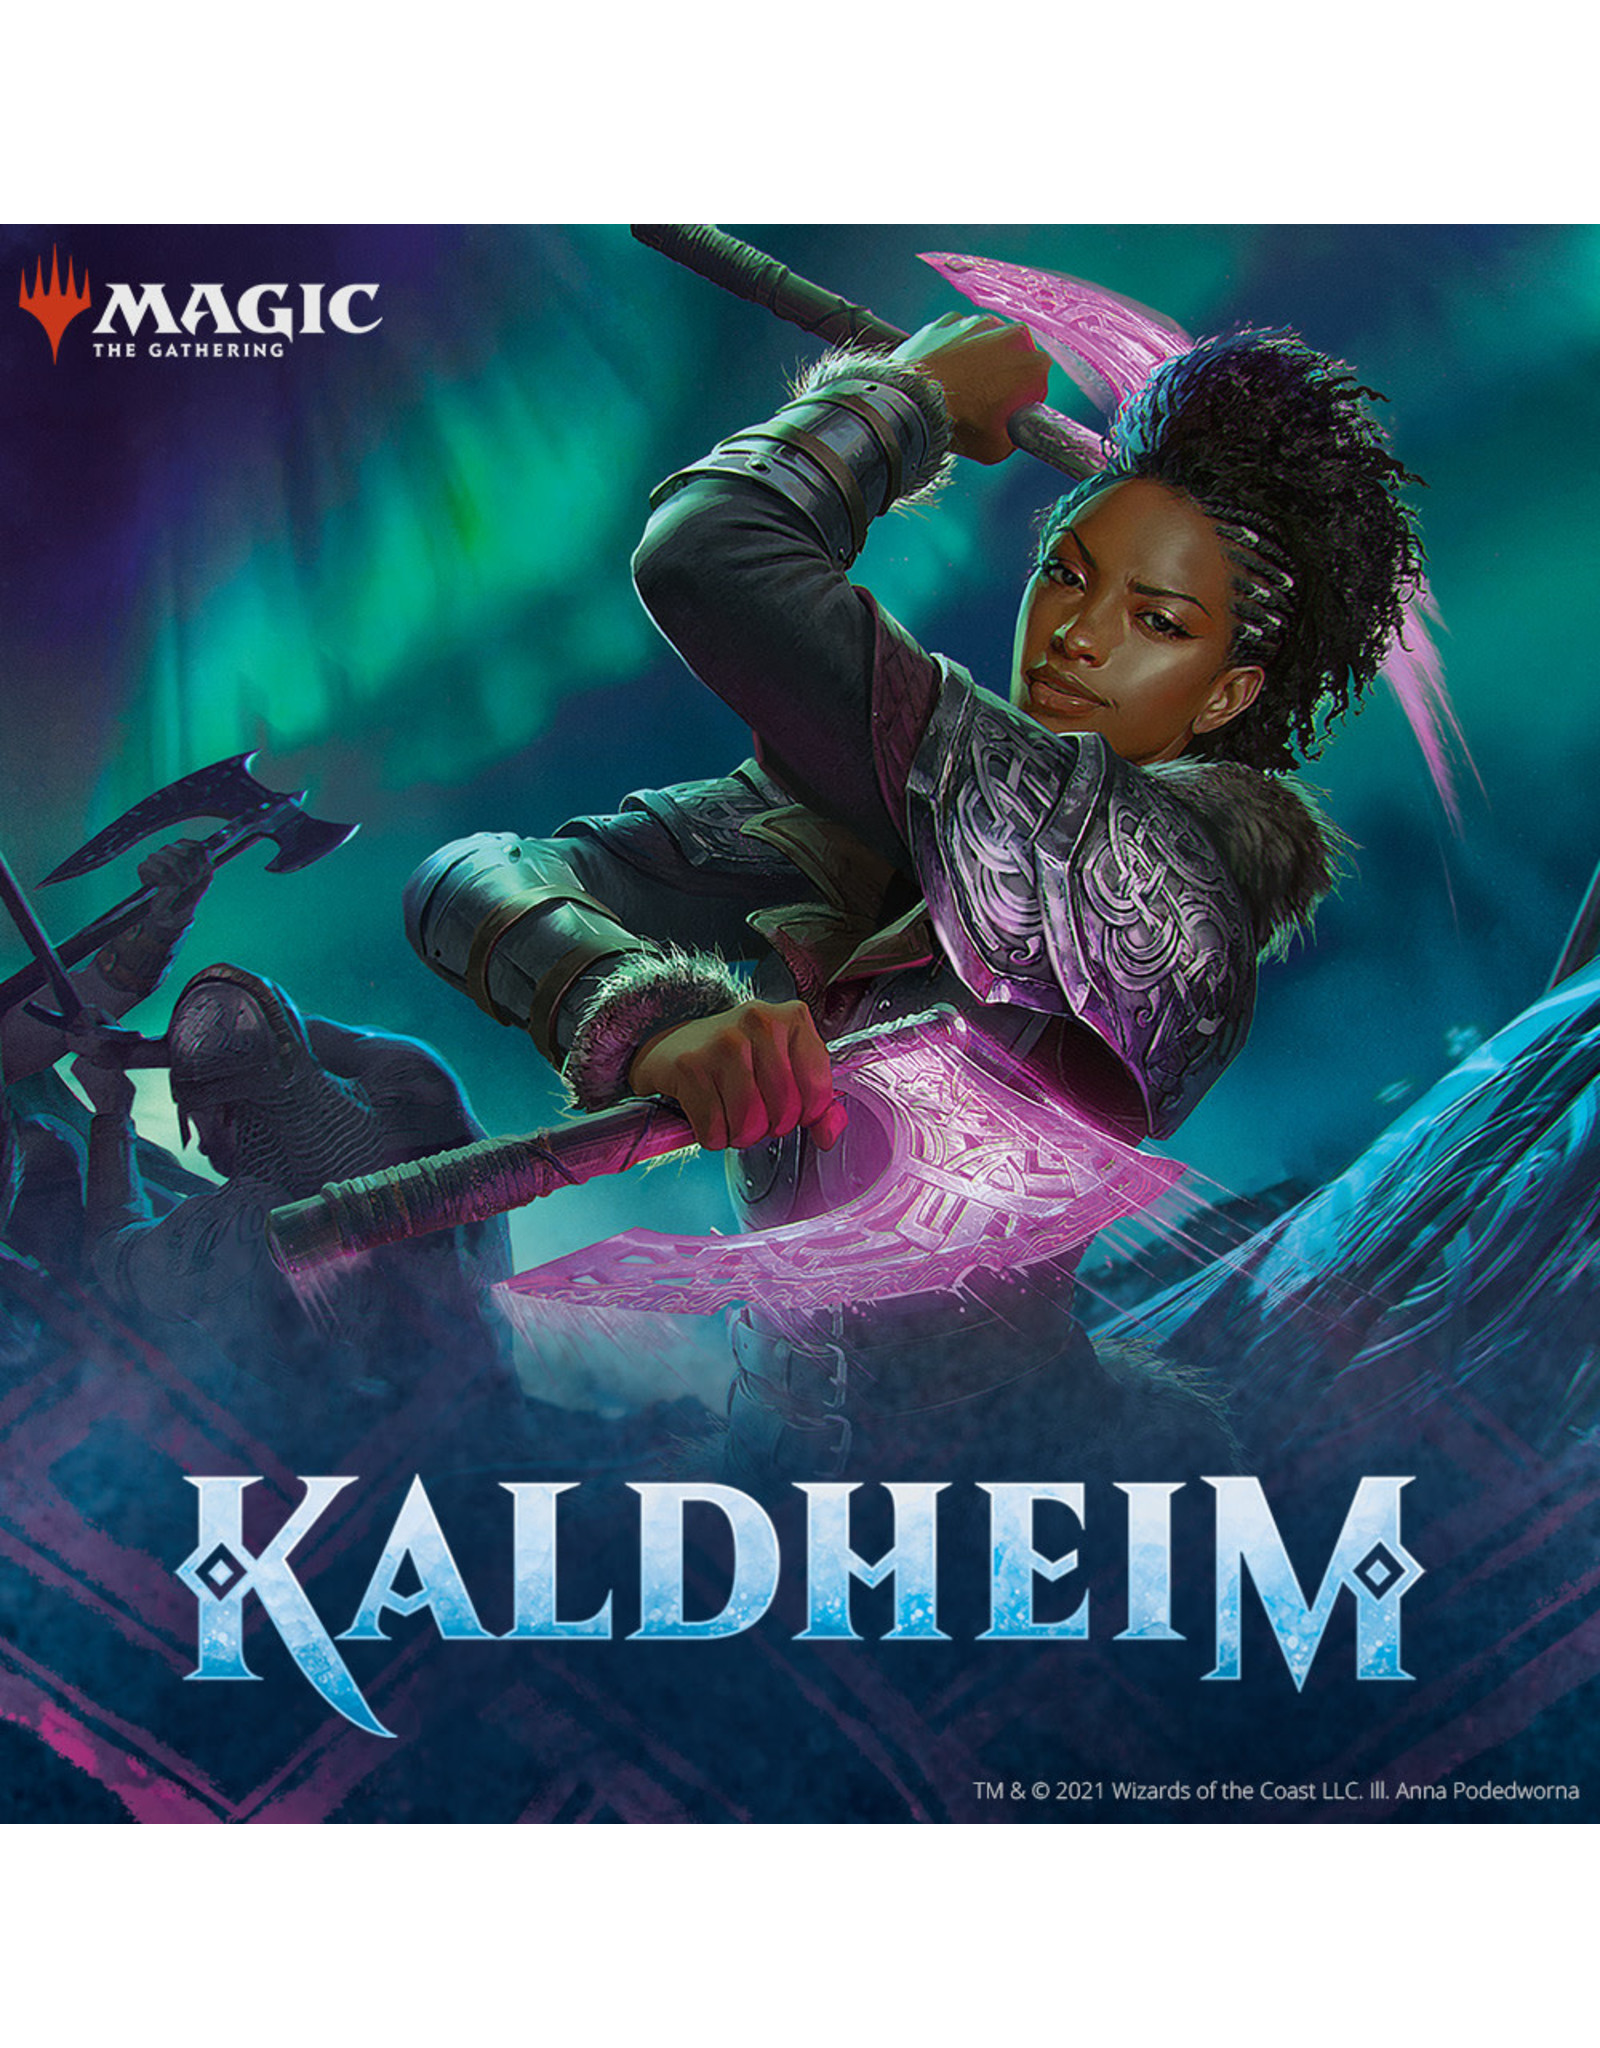 [Event] [Pickup Only] Magic: The Gathering - Kaldheim - Online Prerelease - Sunday 1/31